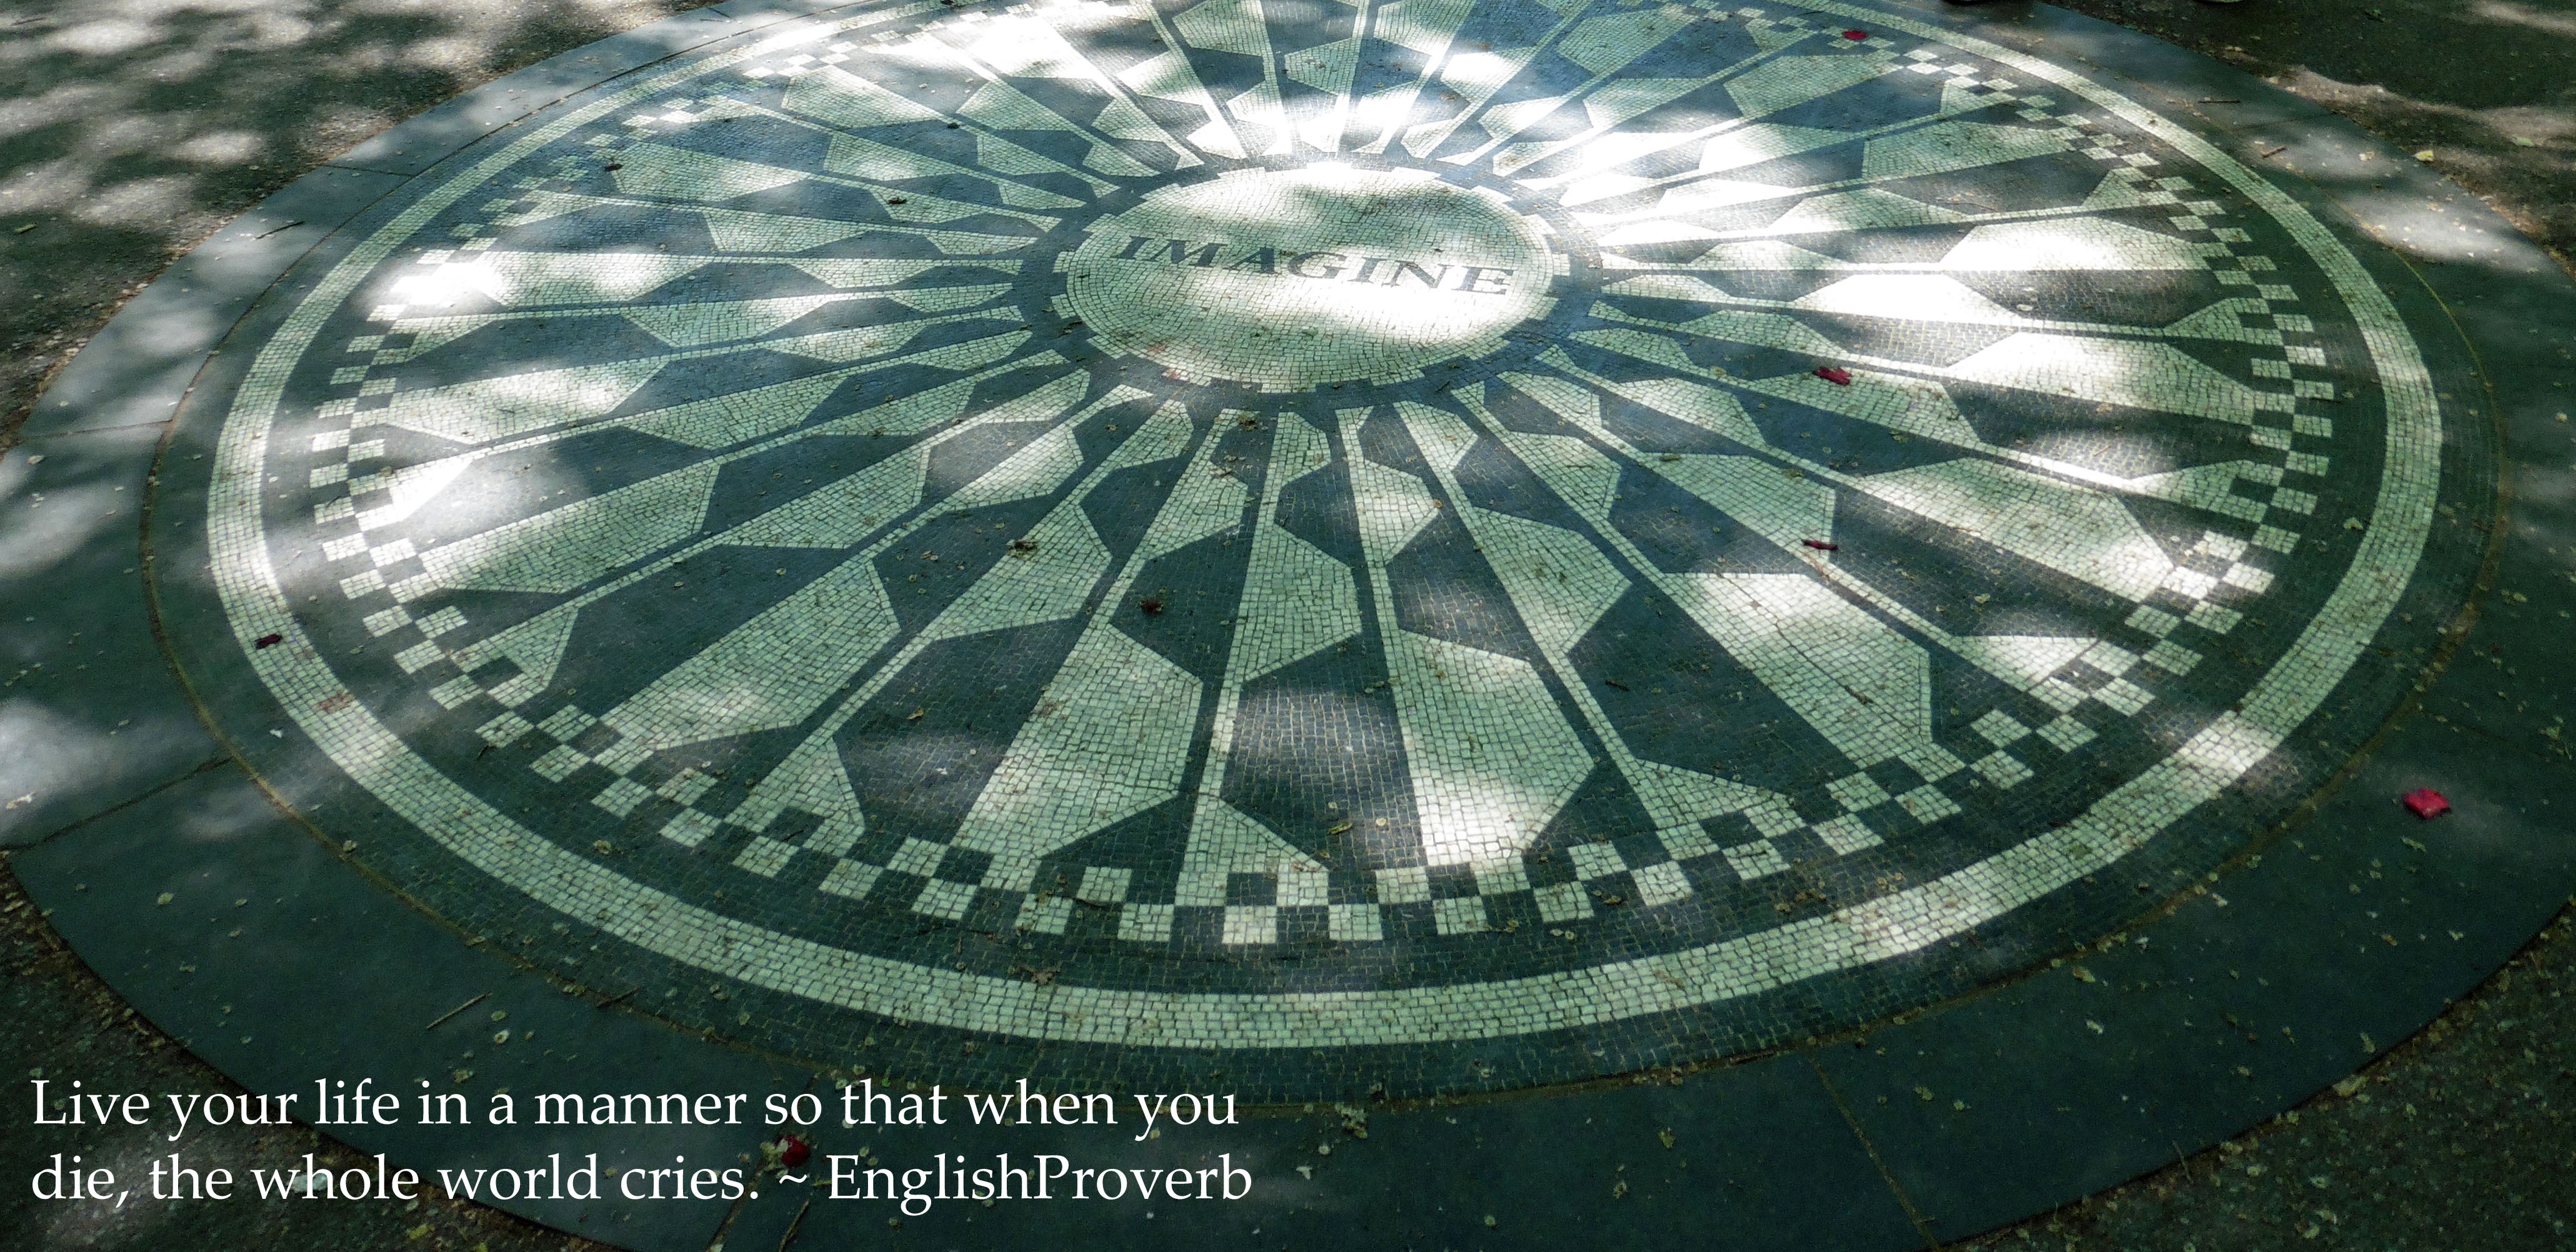 """""""Live your life in a manner so that when you die, the whole world cries."""" - English proverb written on a photo of the Imagine mosaic at Strawberry Fields, NYC"""